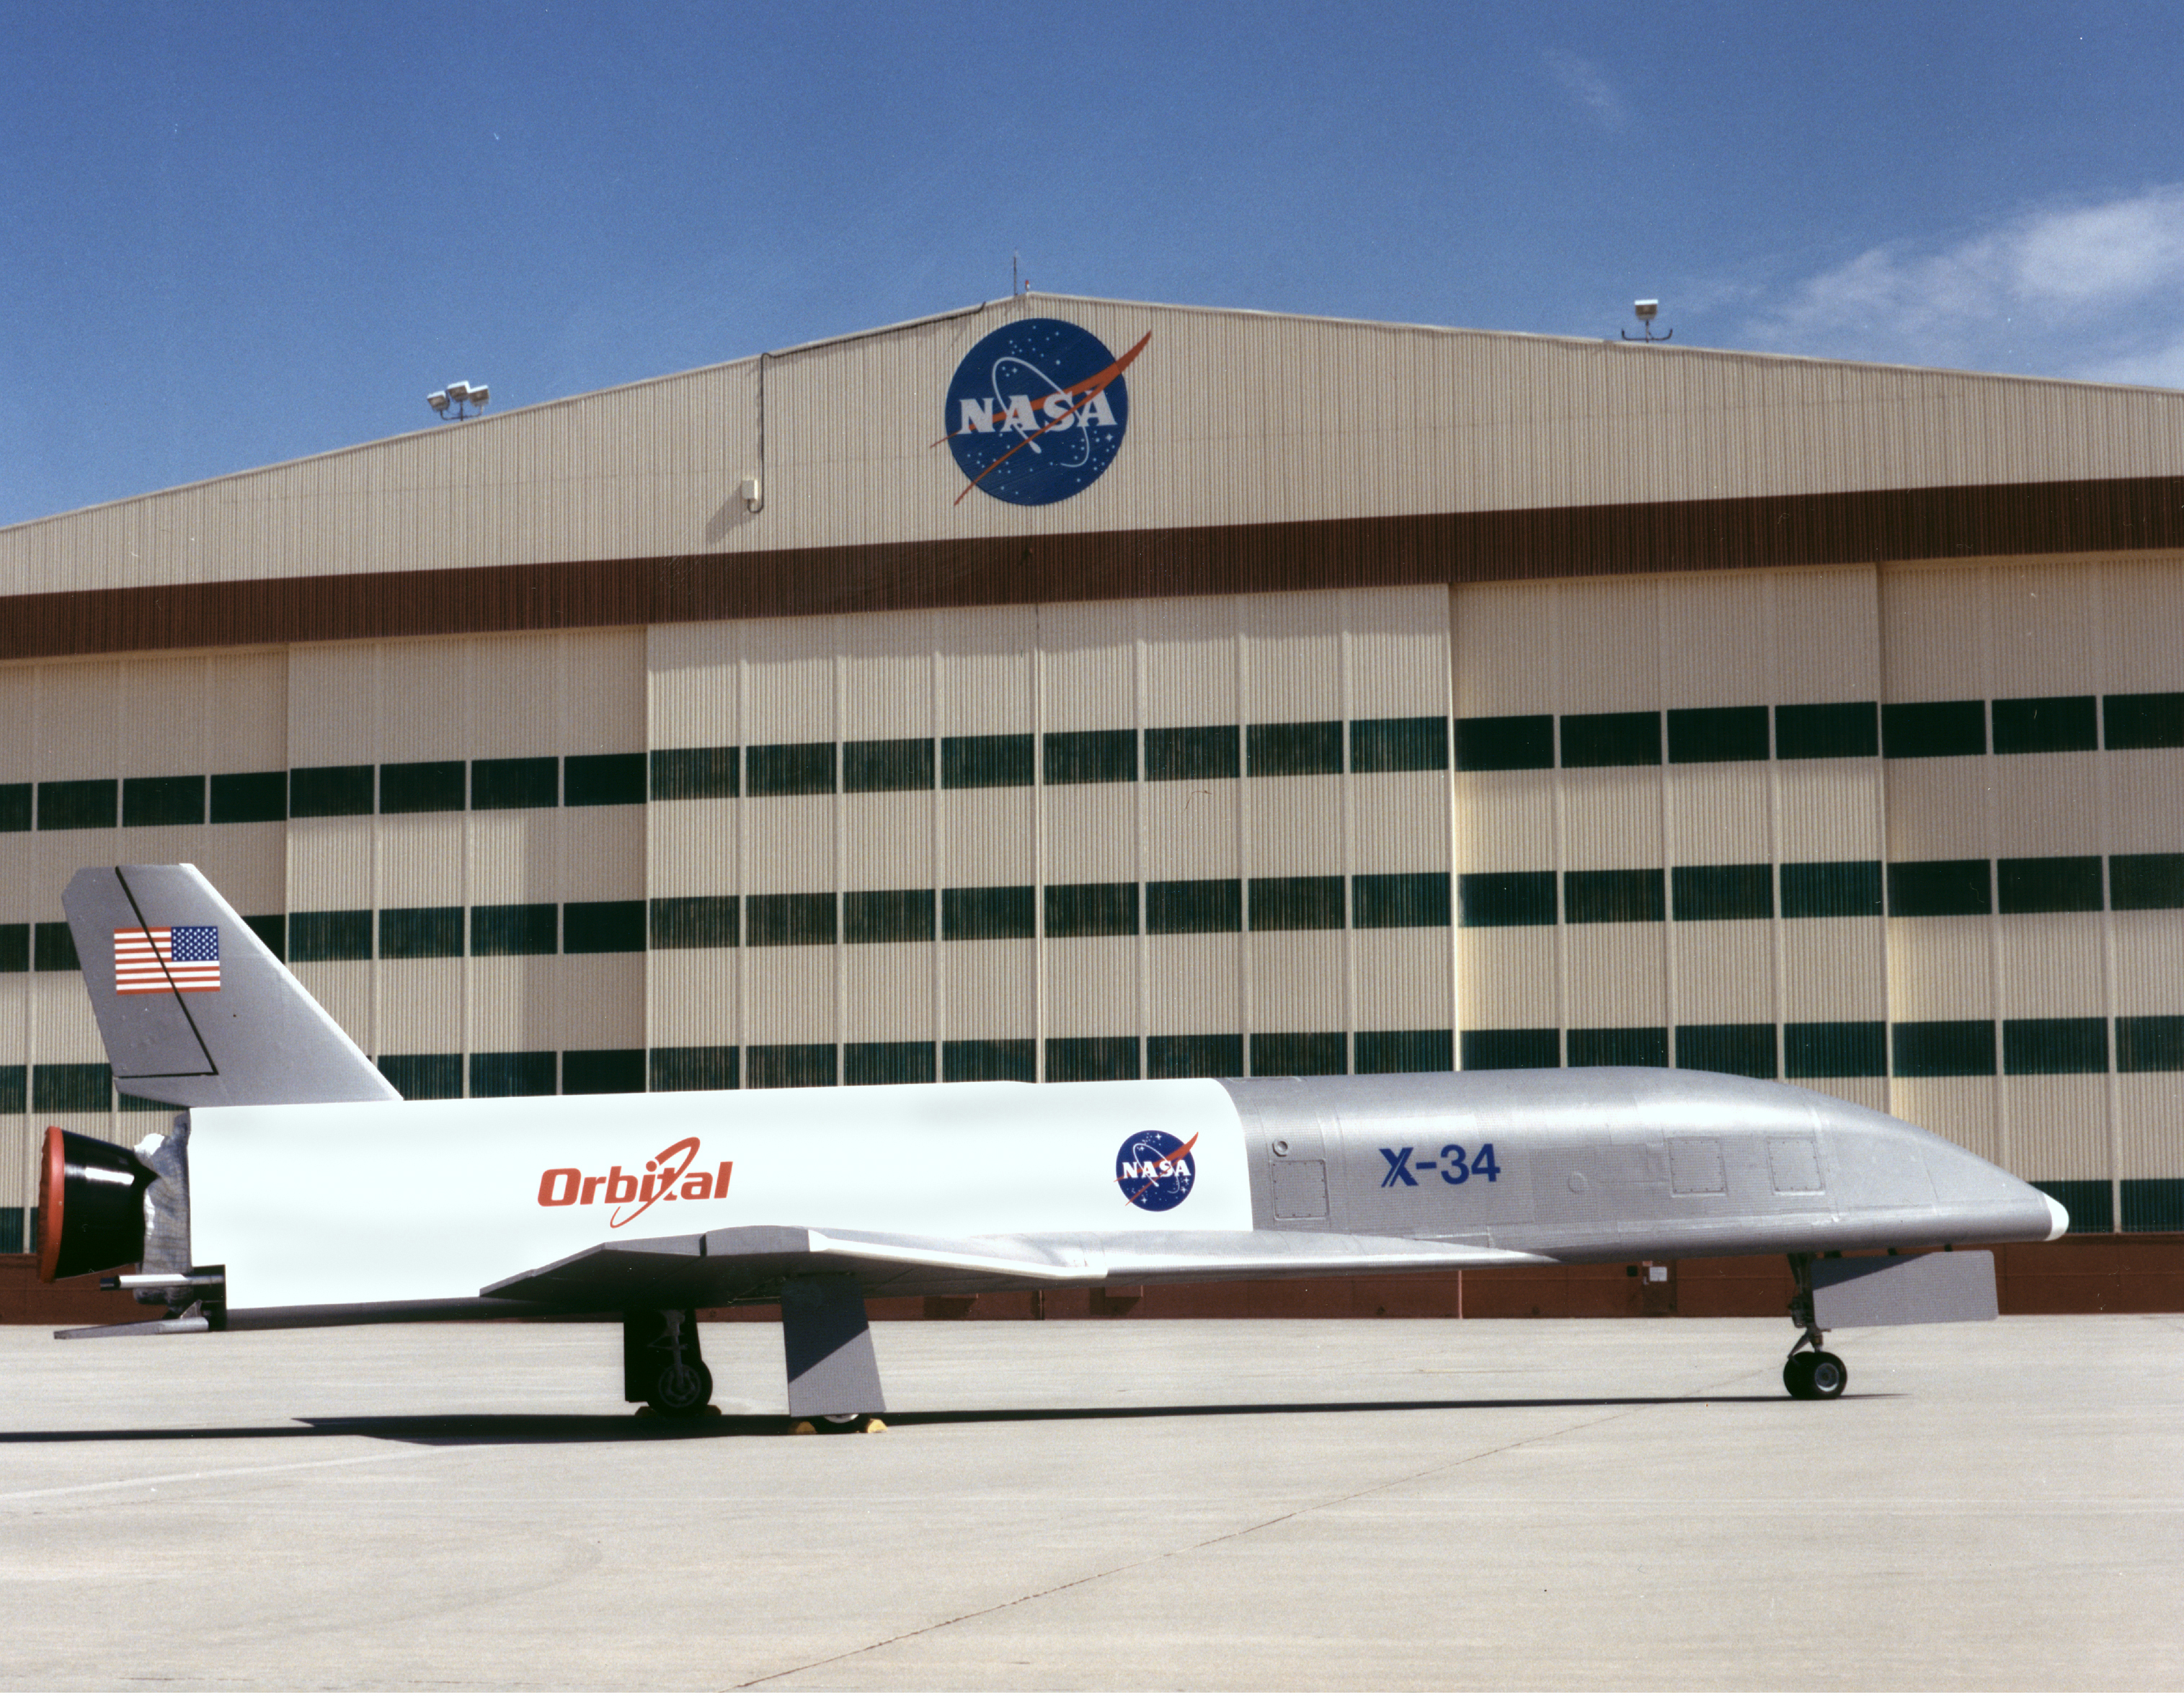 File:X-34 at NASA Dryden Flight Research Center - GPN-2000 ...